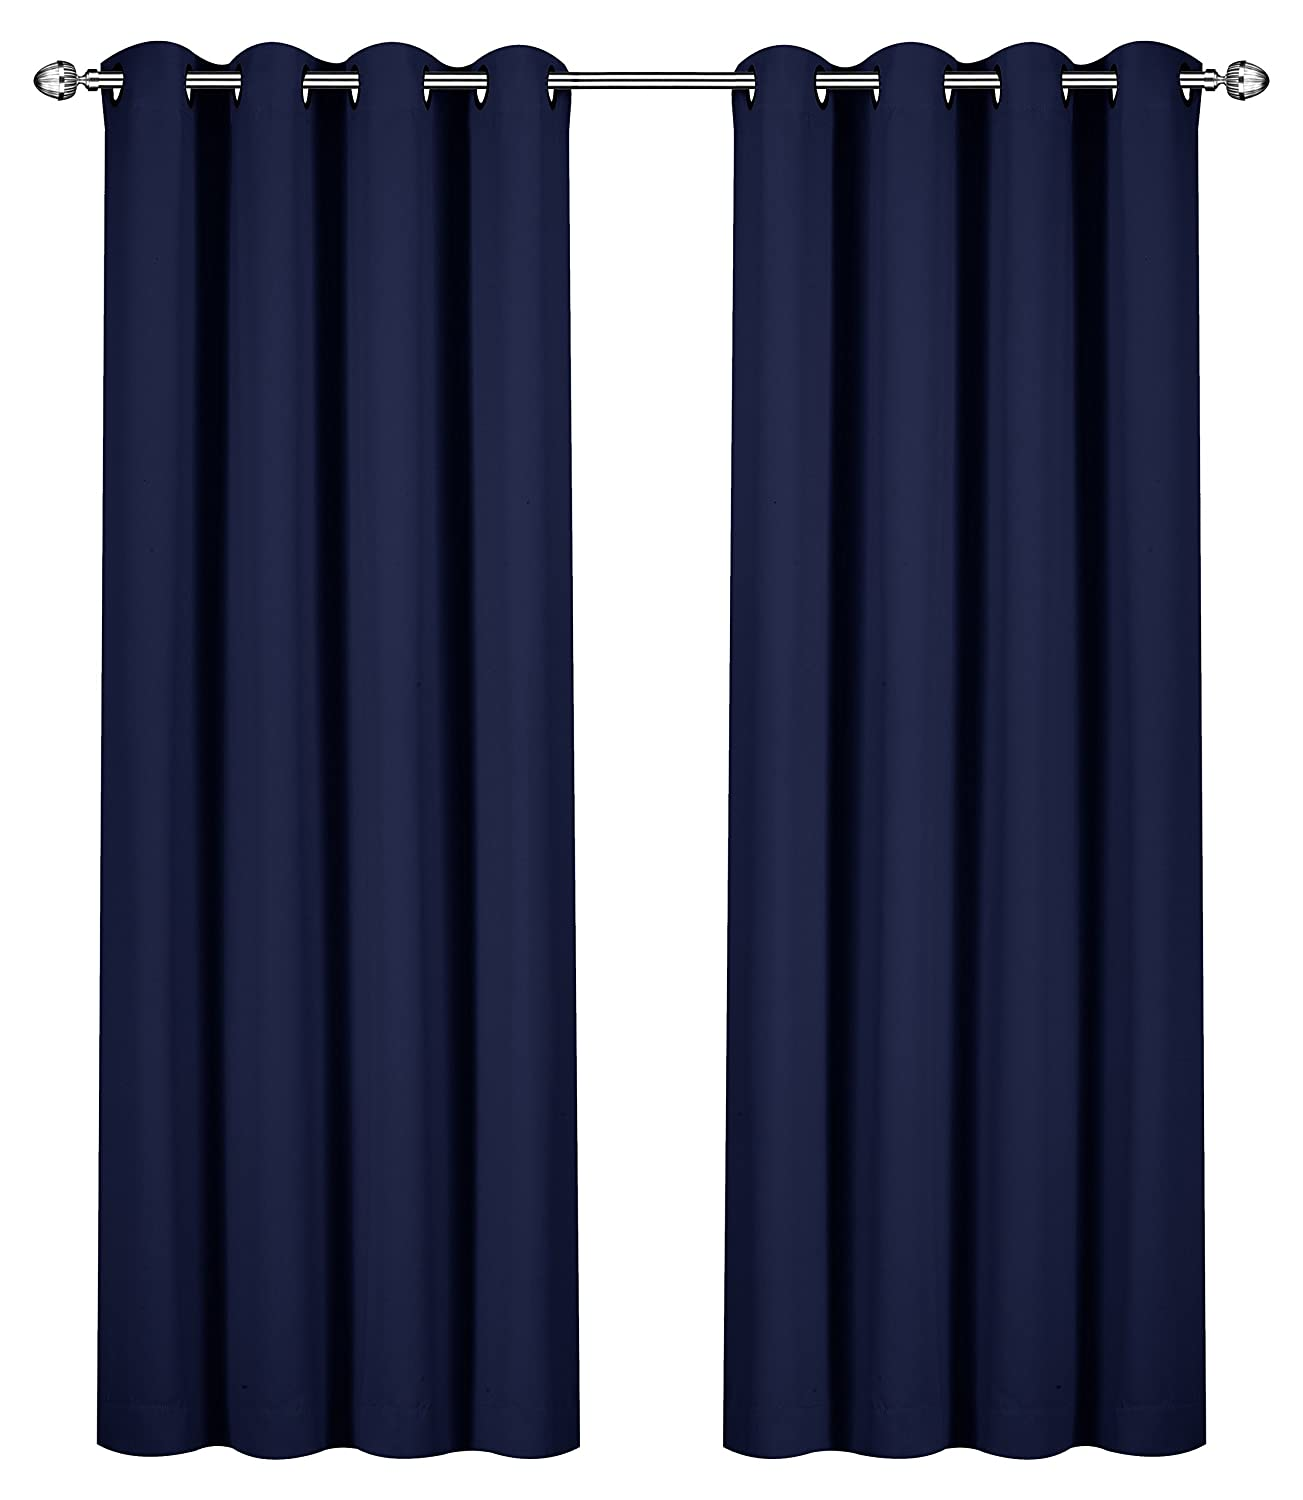 Utopia Bedding Blackout Room Darkening and Thermal Insulating Window Curtains/Panels/Drapes - 2 Panels Set - 8 Grommets per Panel - 2 Tie Backs Included (Navy, 52 x 84 Inches with Grommets)